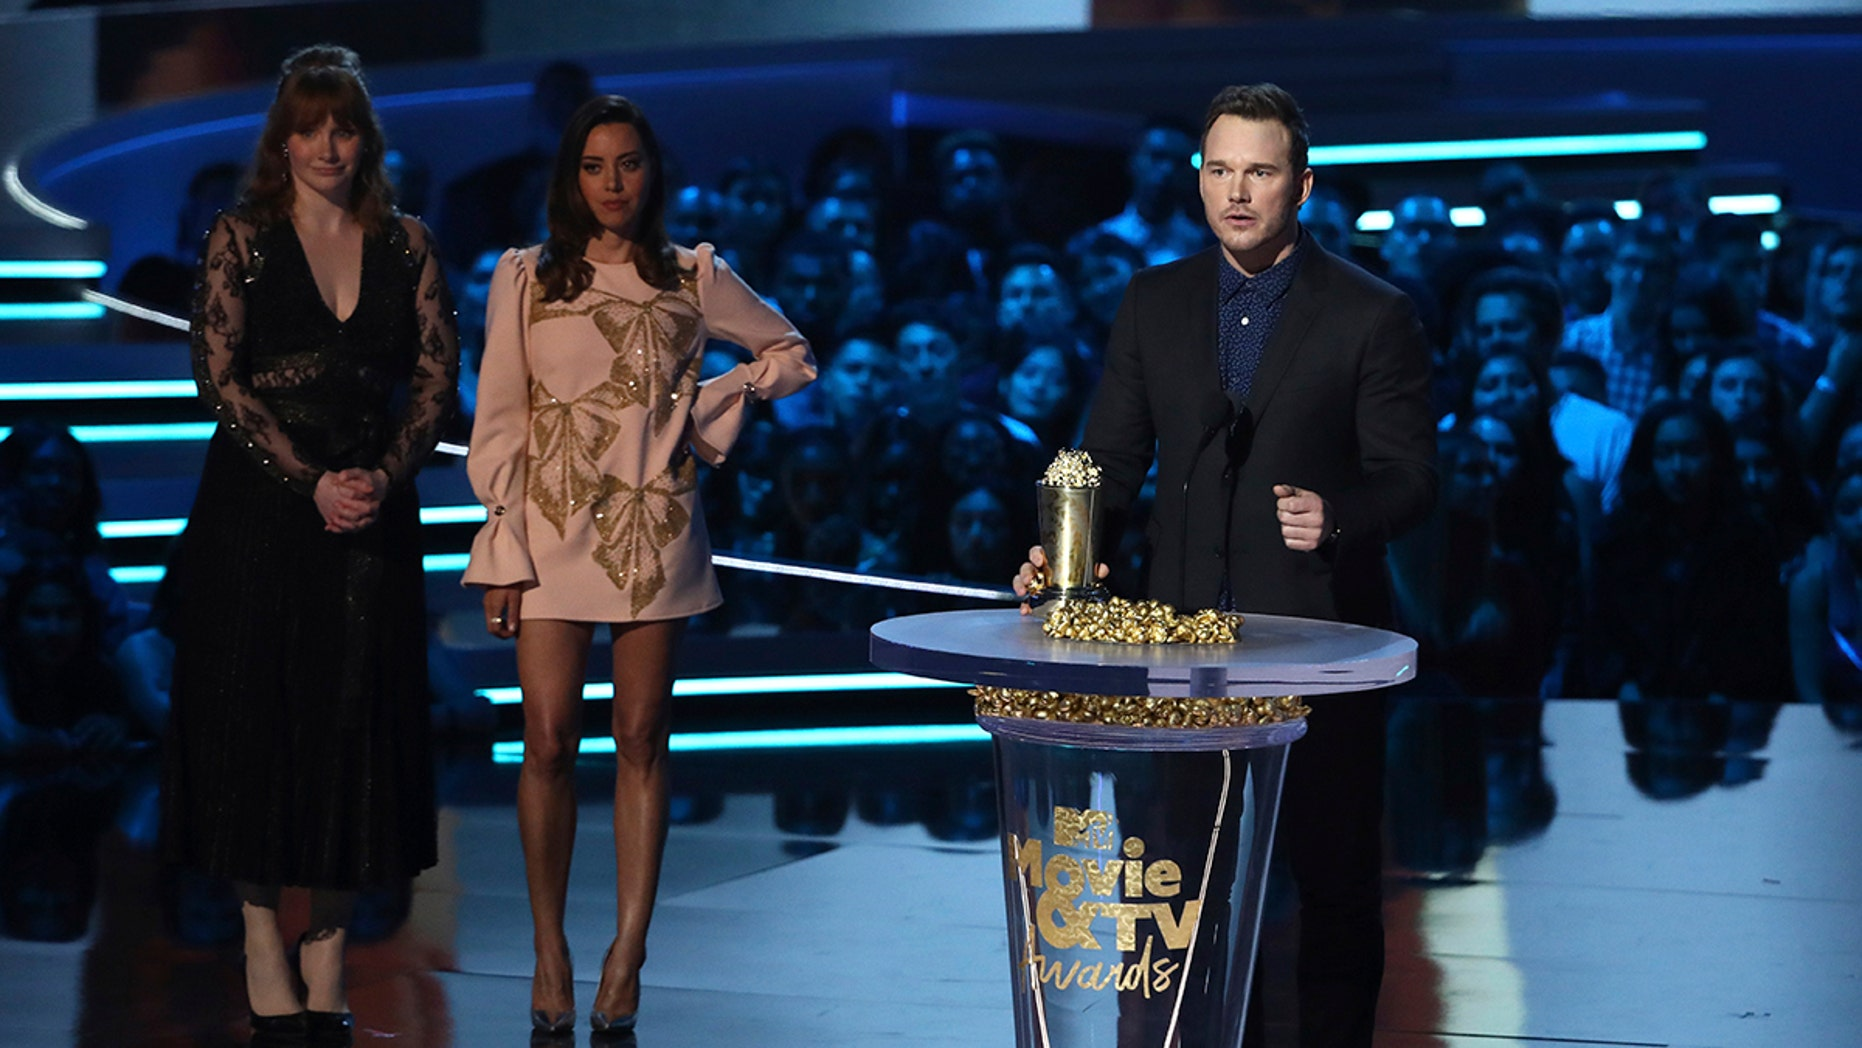 Chris Pratt accepts the generation award as Bryce Dallas Howard, from left, and Aubrey Plaza look on at the MTV Movie and TV Awards at the Barker Hangar in Santa Monica, Calif.